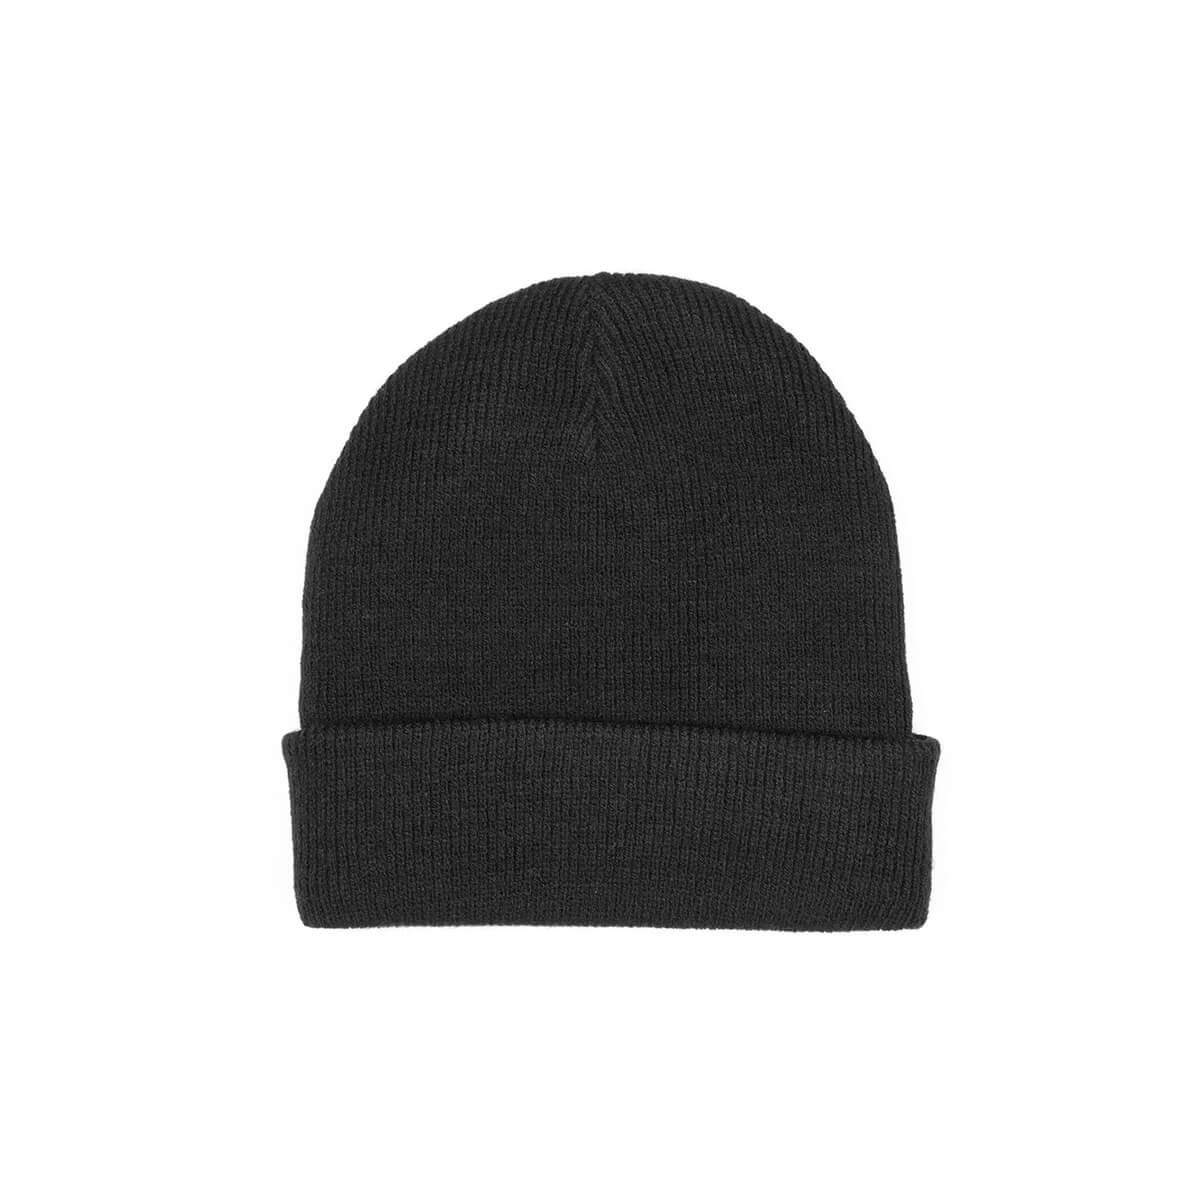 5cf0f14ed6 Vans - Black Mn Grove Beanie for Men - Lyst. View fullscreen